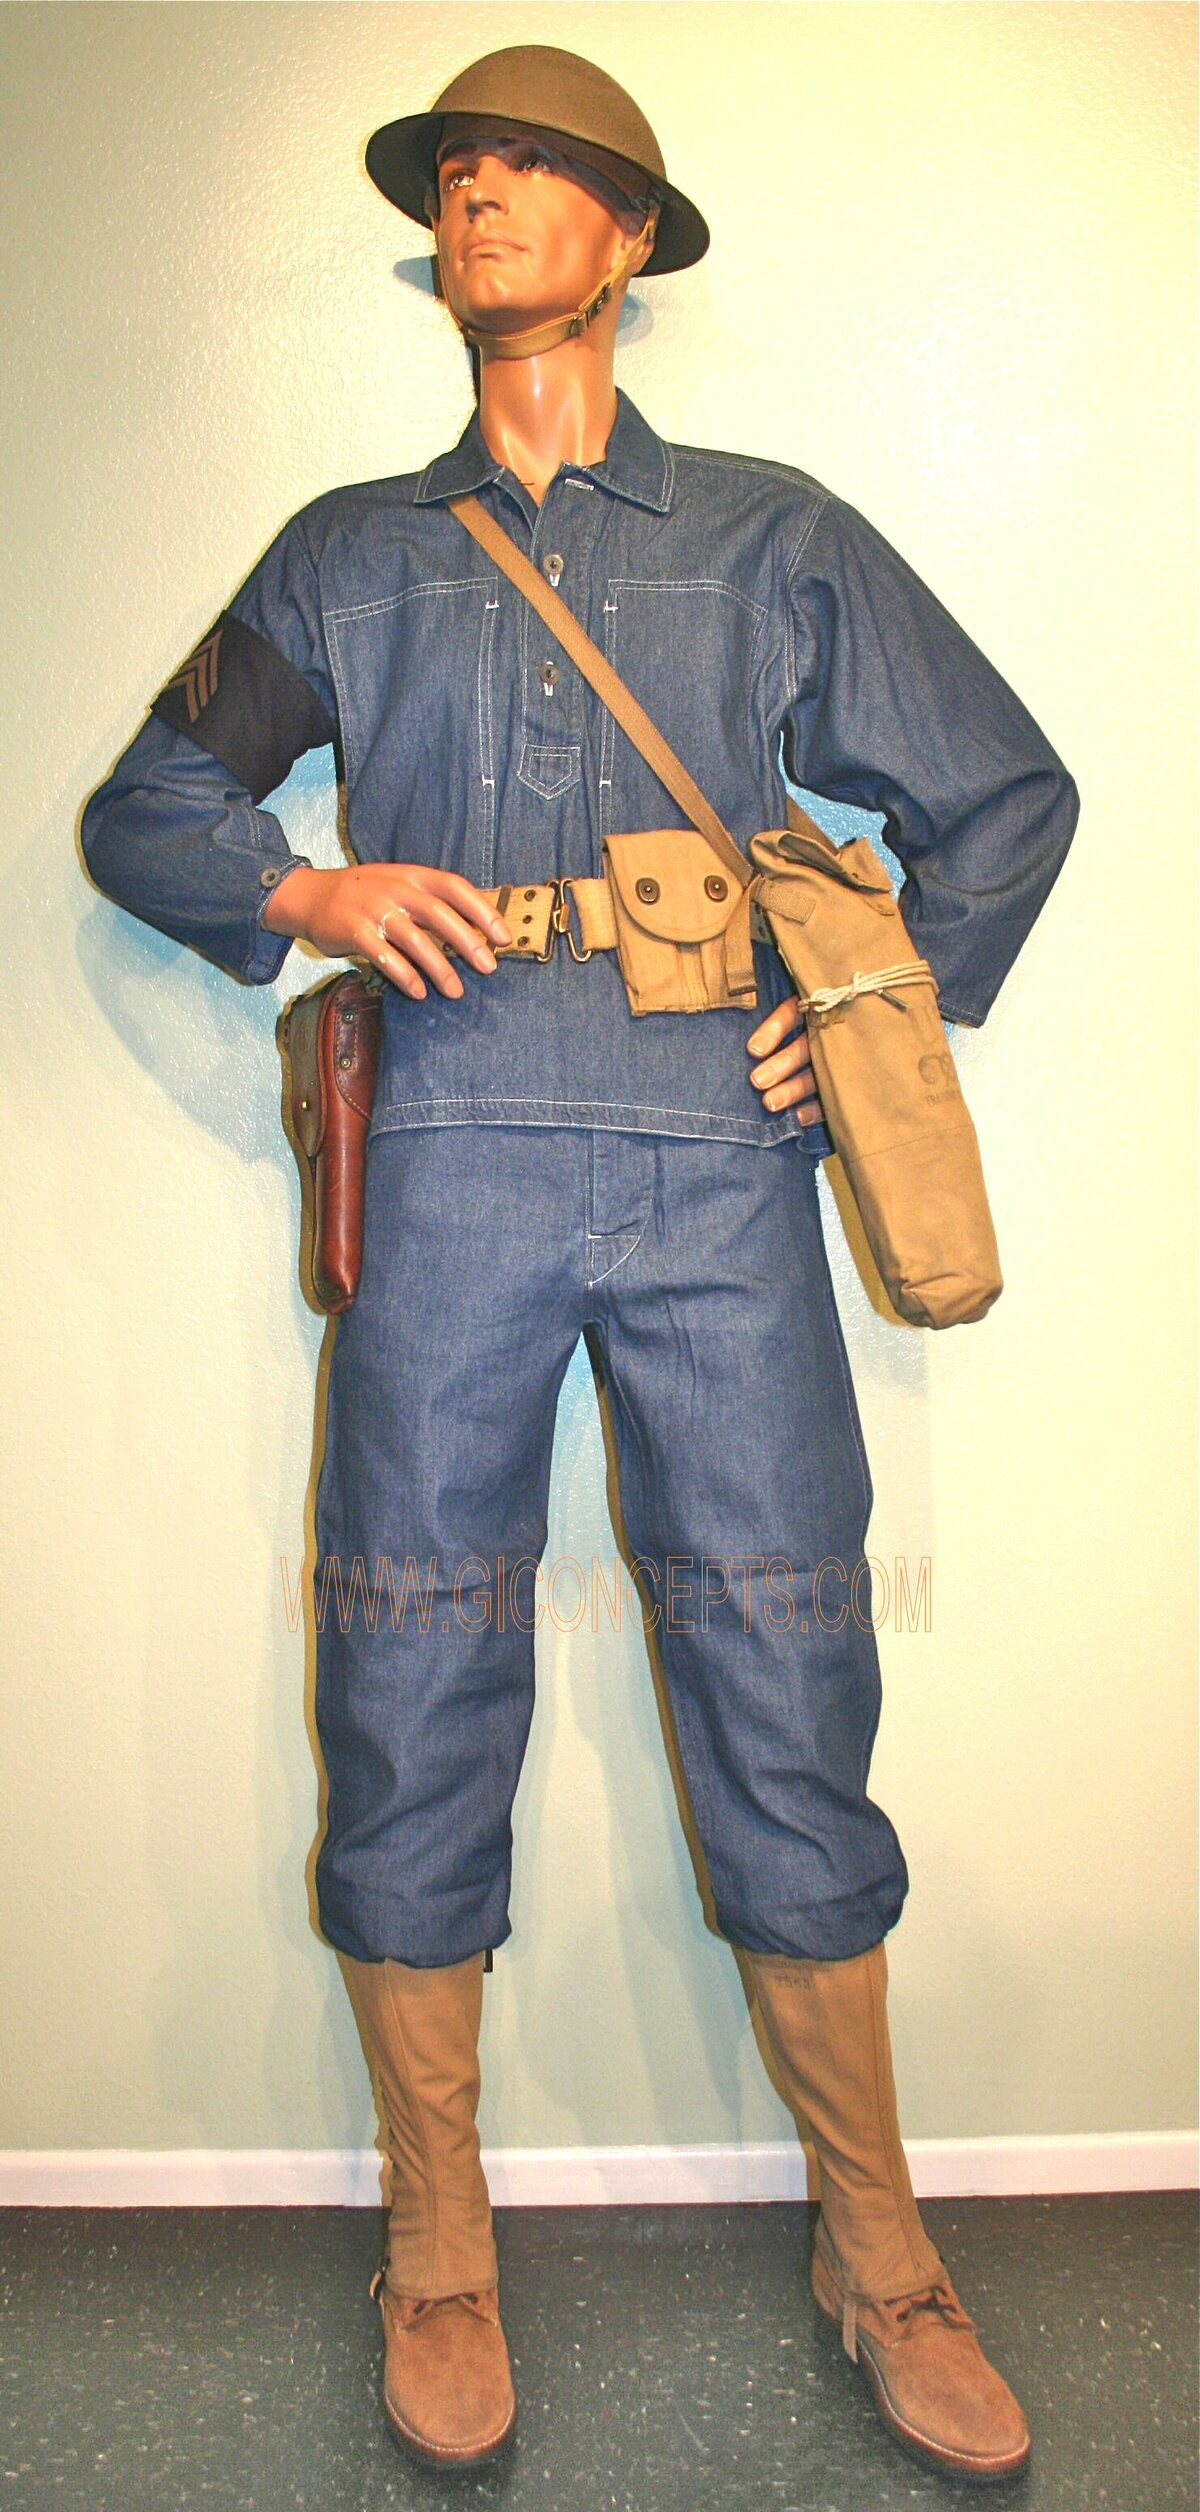 1940 Blue Denim Coast Artillery Uniform